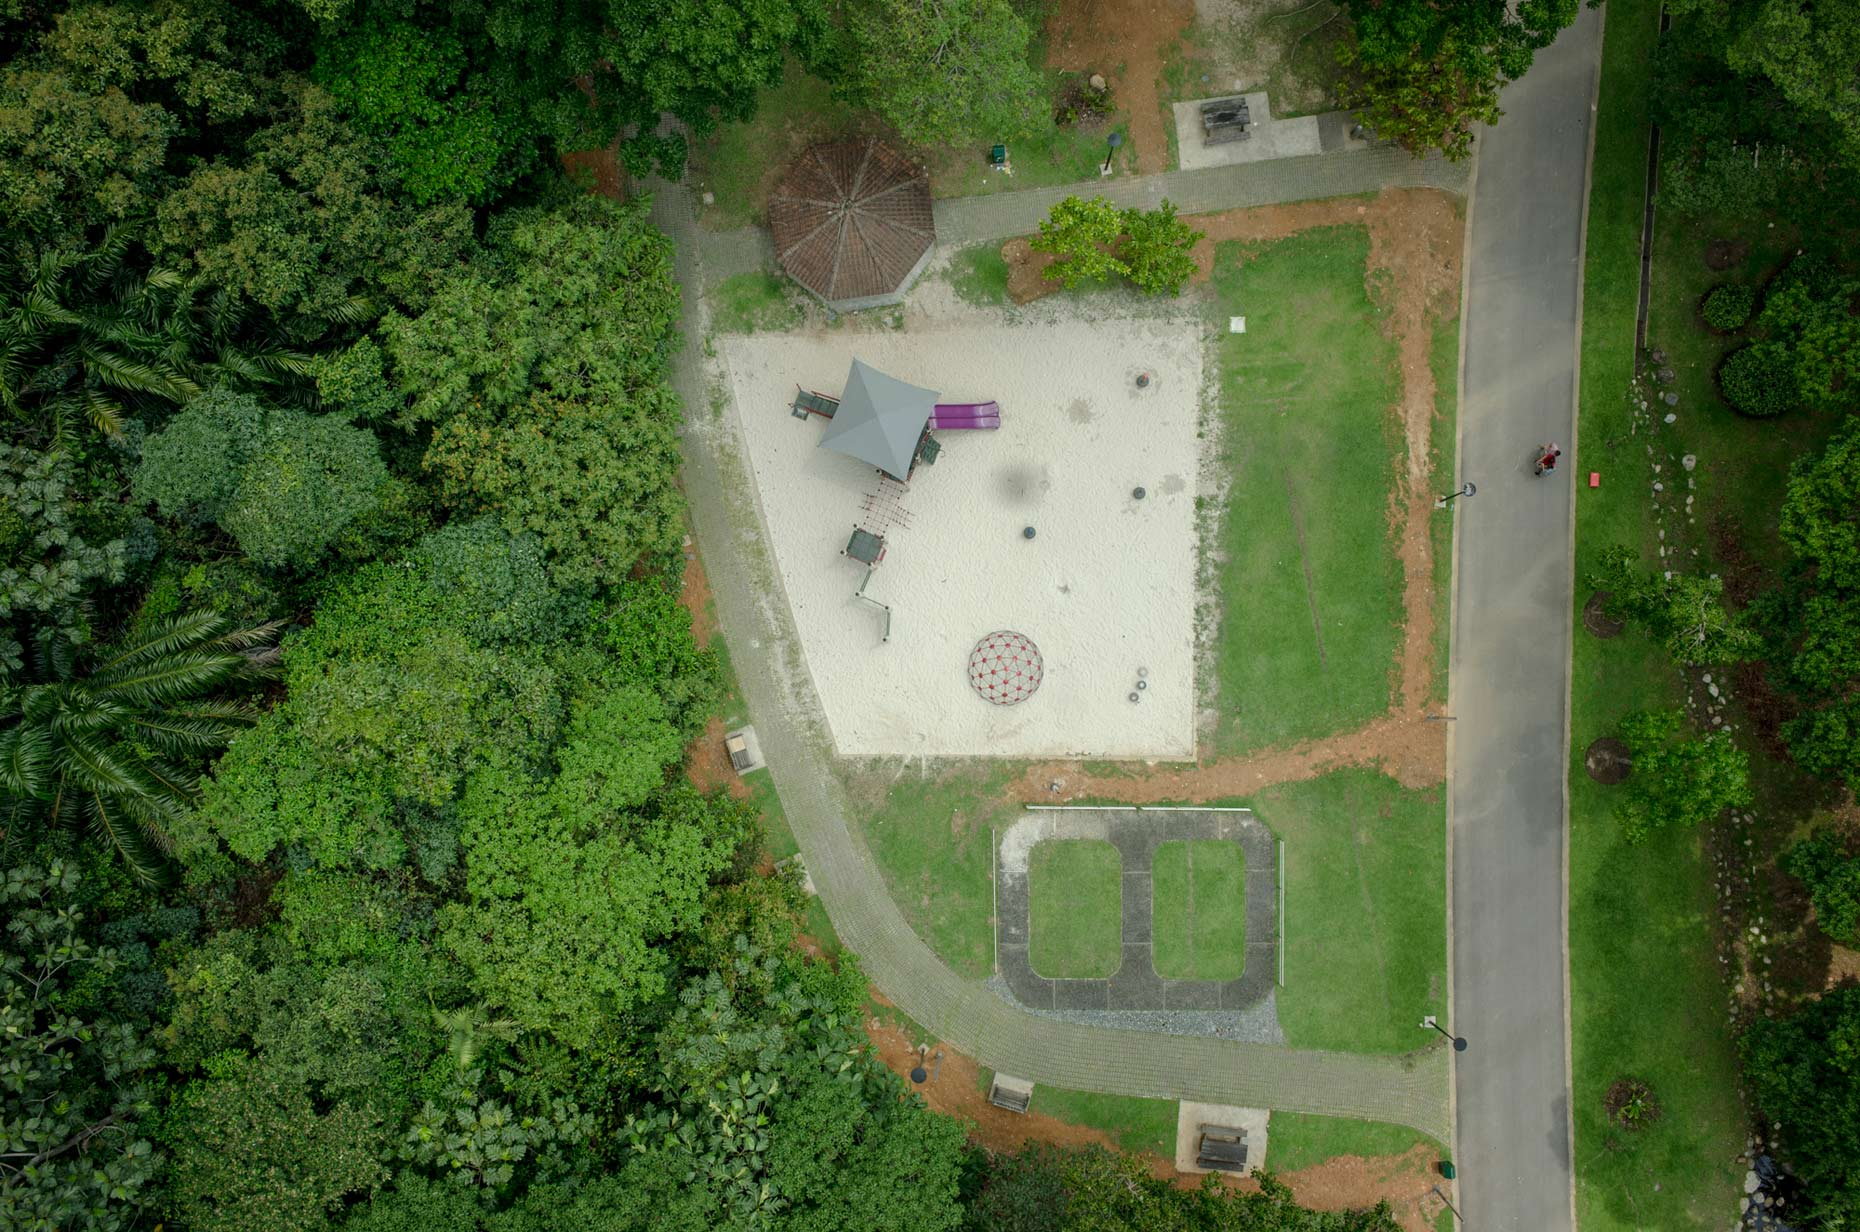 The Play Project: Aerial documentation of playgrounds in Singapore | Singapore | Stefen Chow